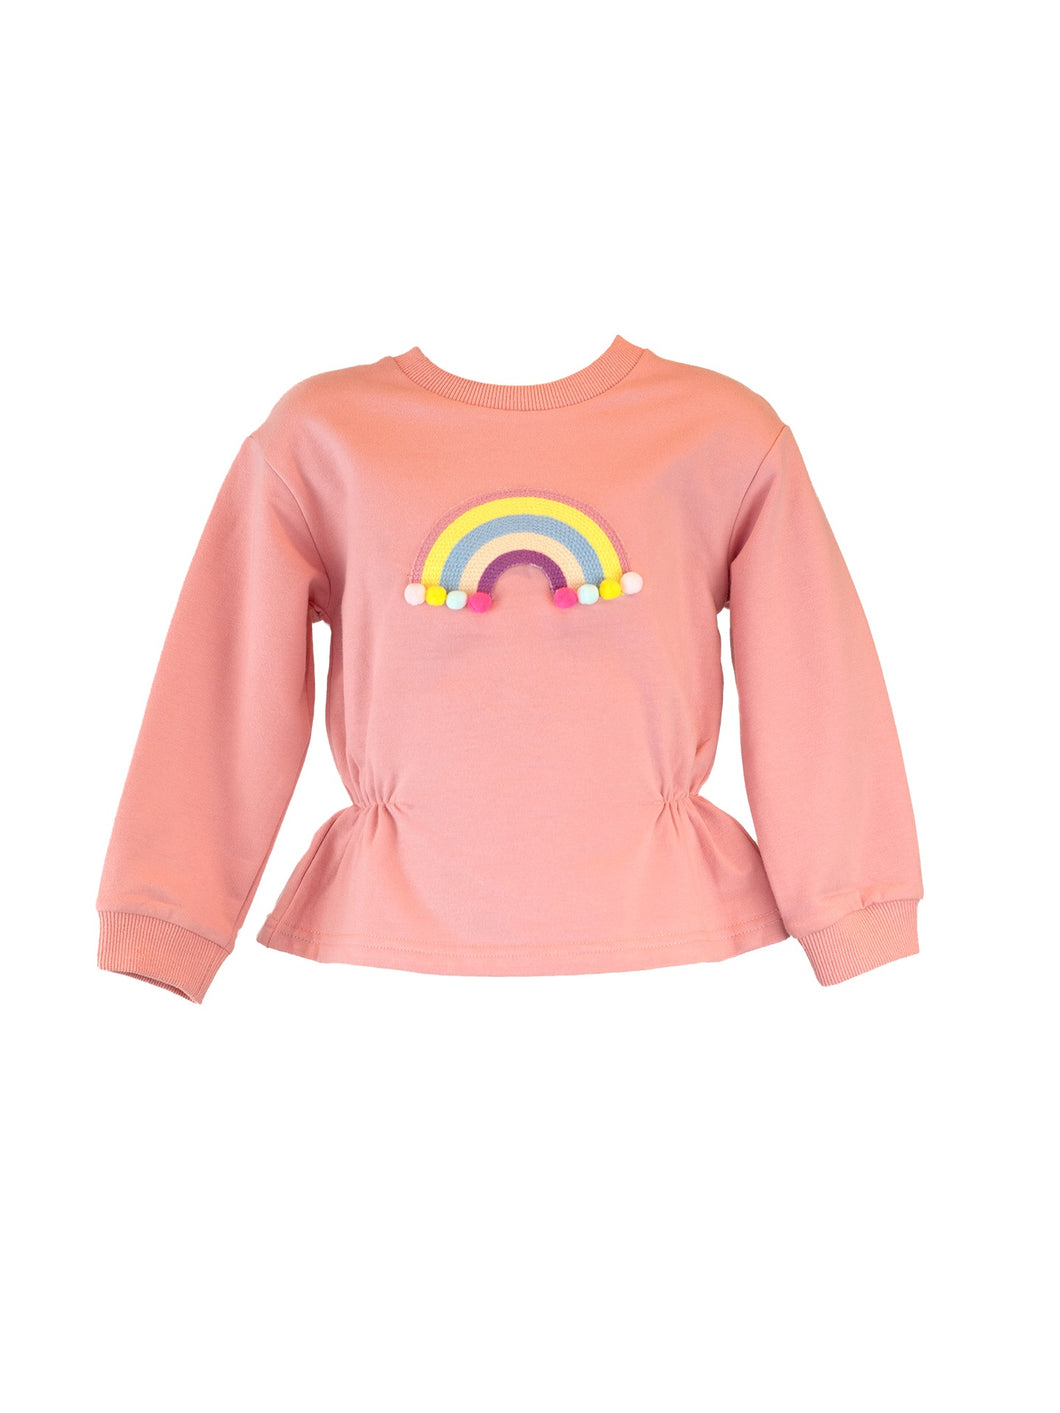 LITTLE WHO - L/S PINK RAINBOW CREWNECK SWEATER